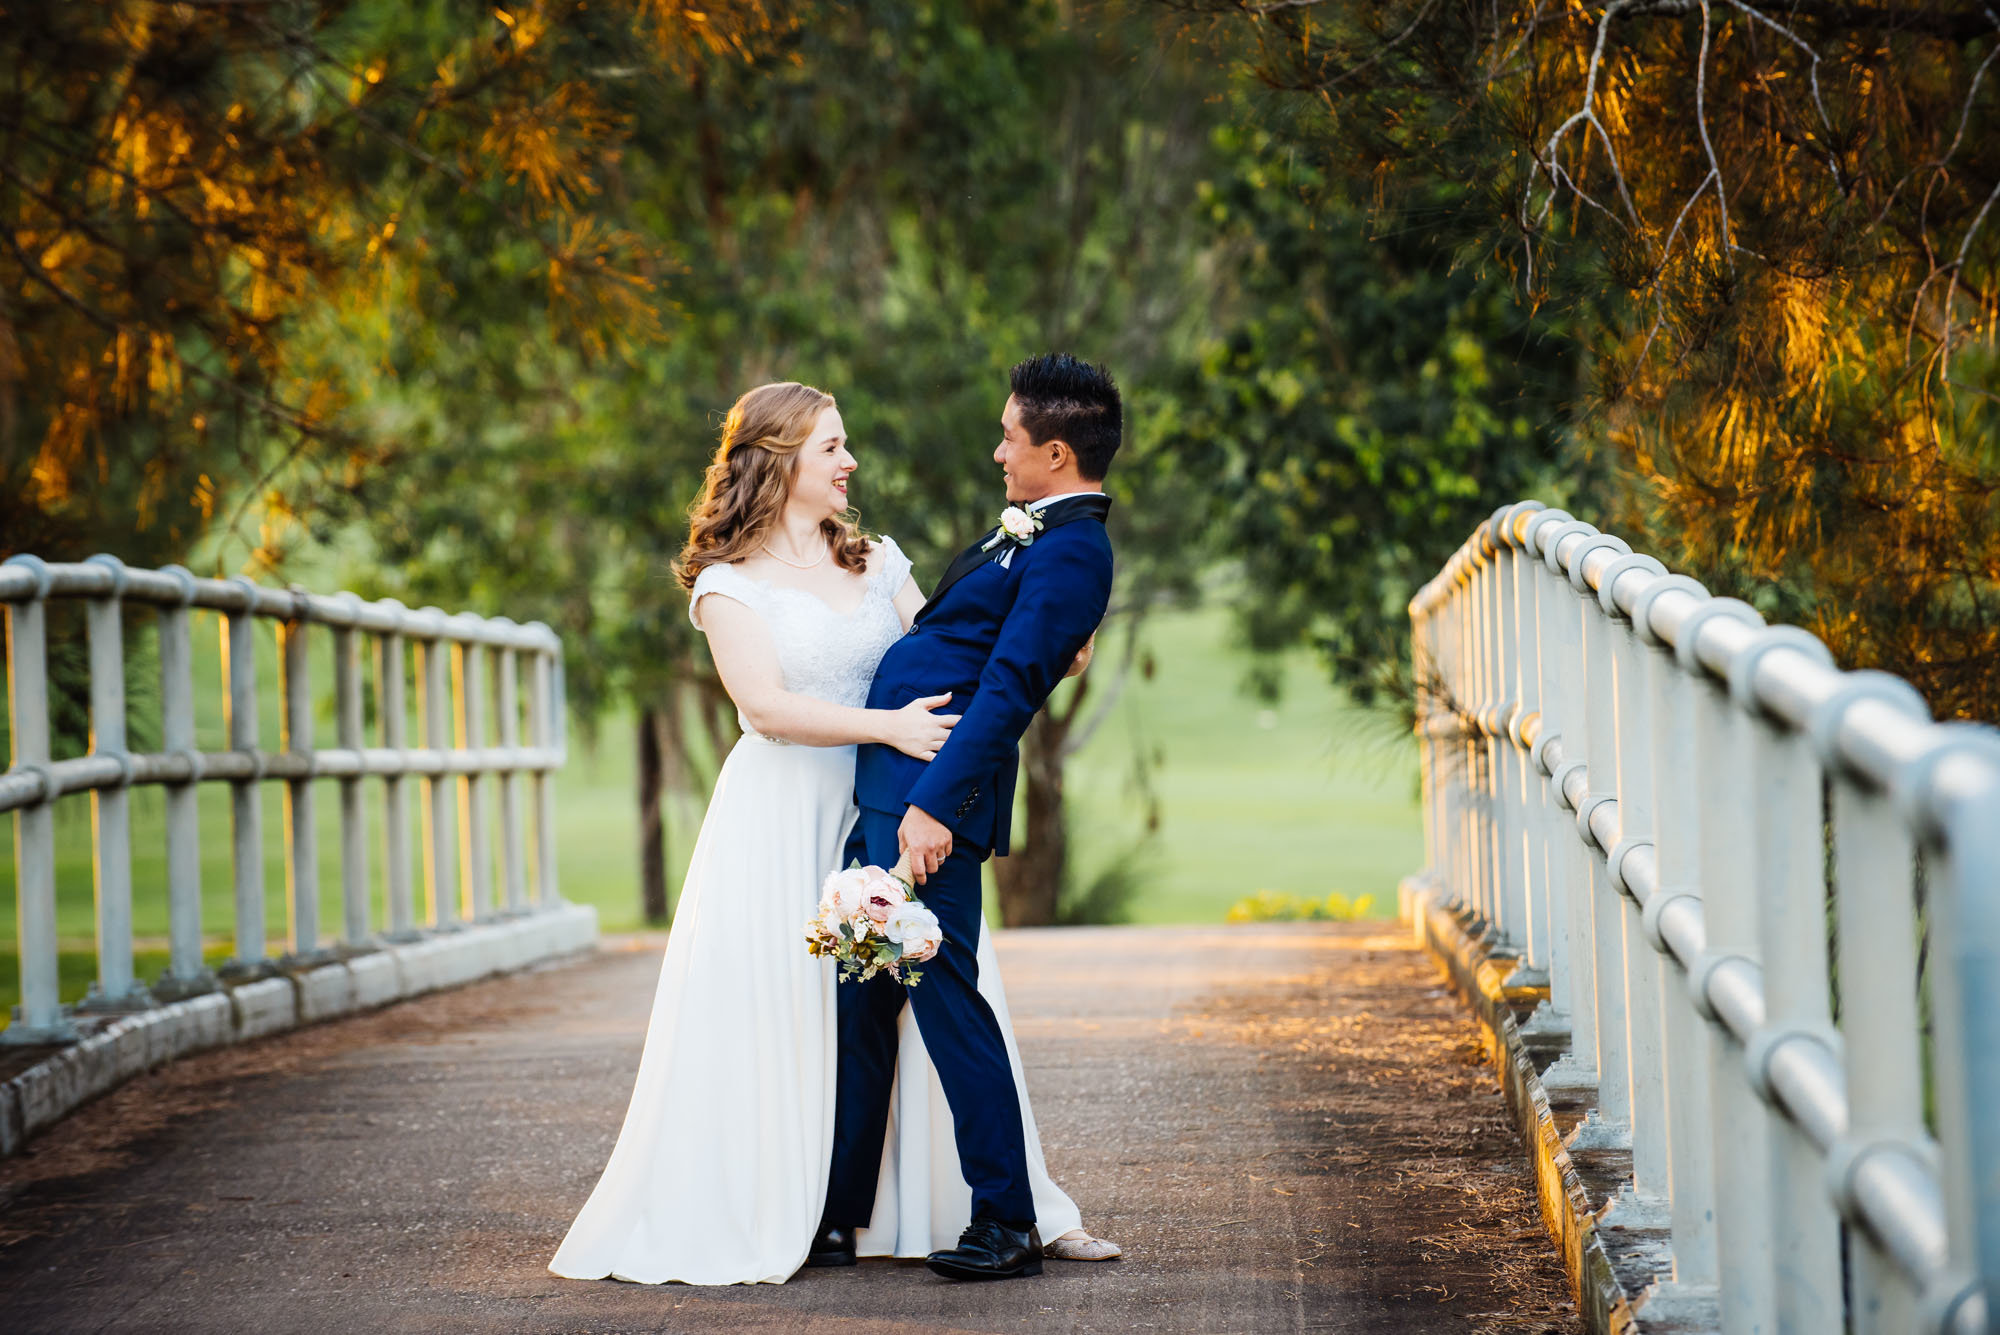 Alyssa_Jason_StLuciaGolfCourseWedding_Brisbane_AnnaOsetroffPhotographer_Highlights_WebRes-106